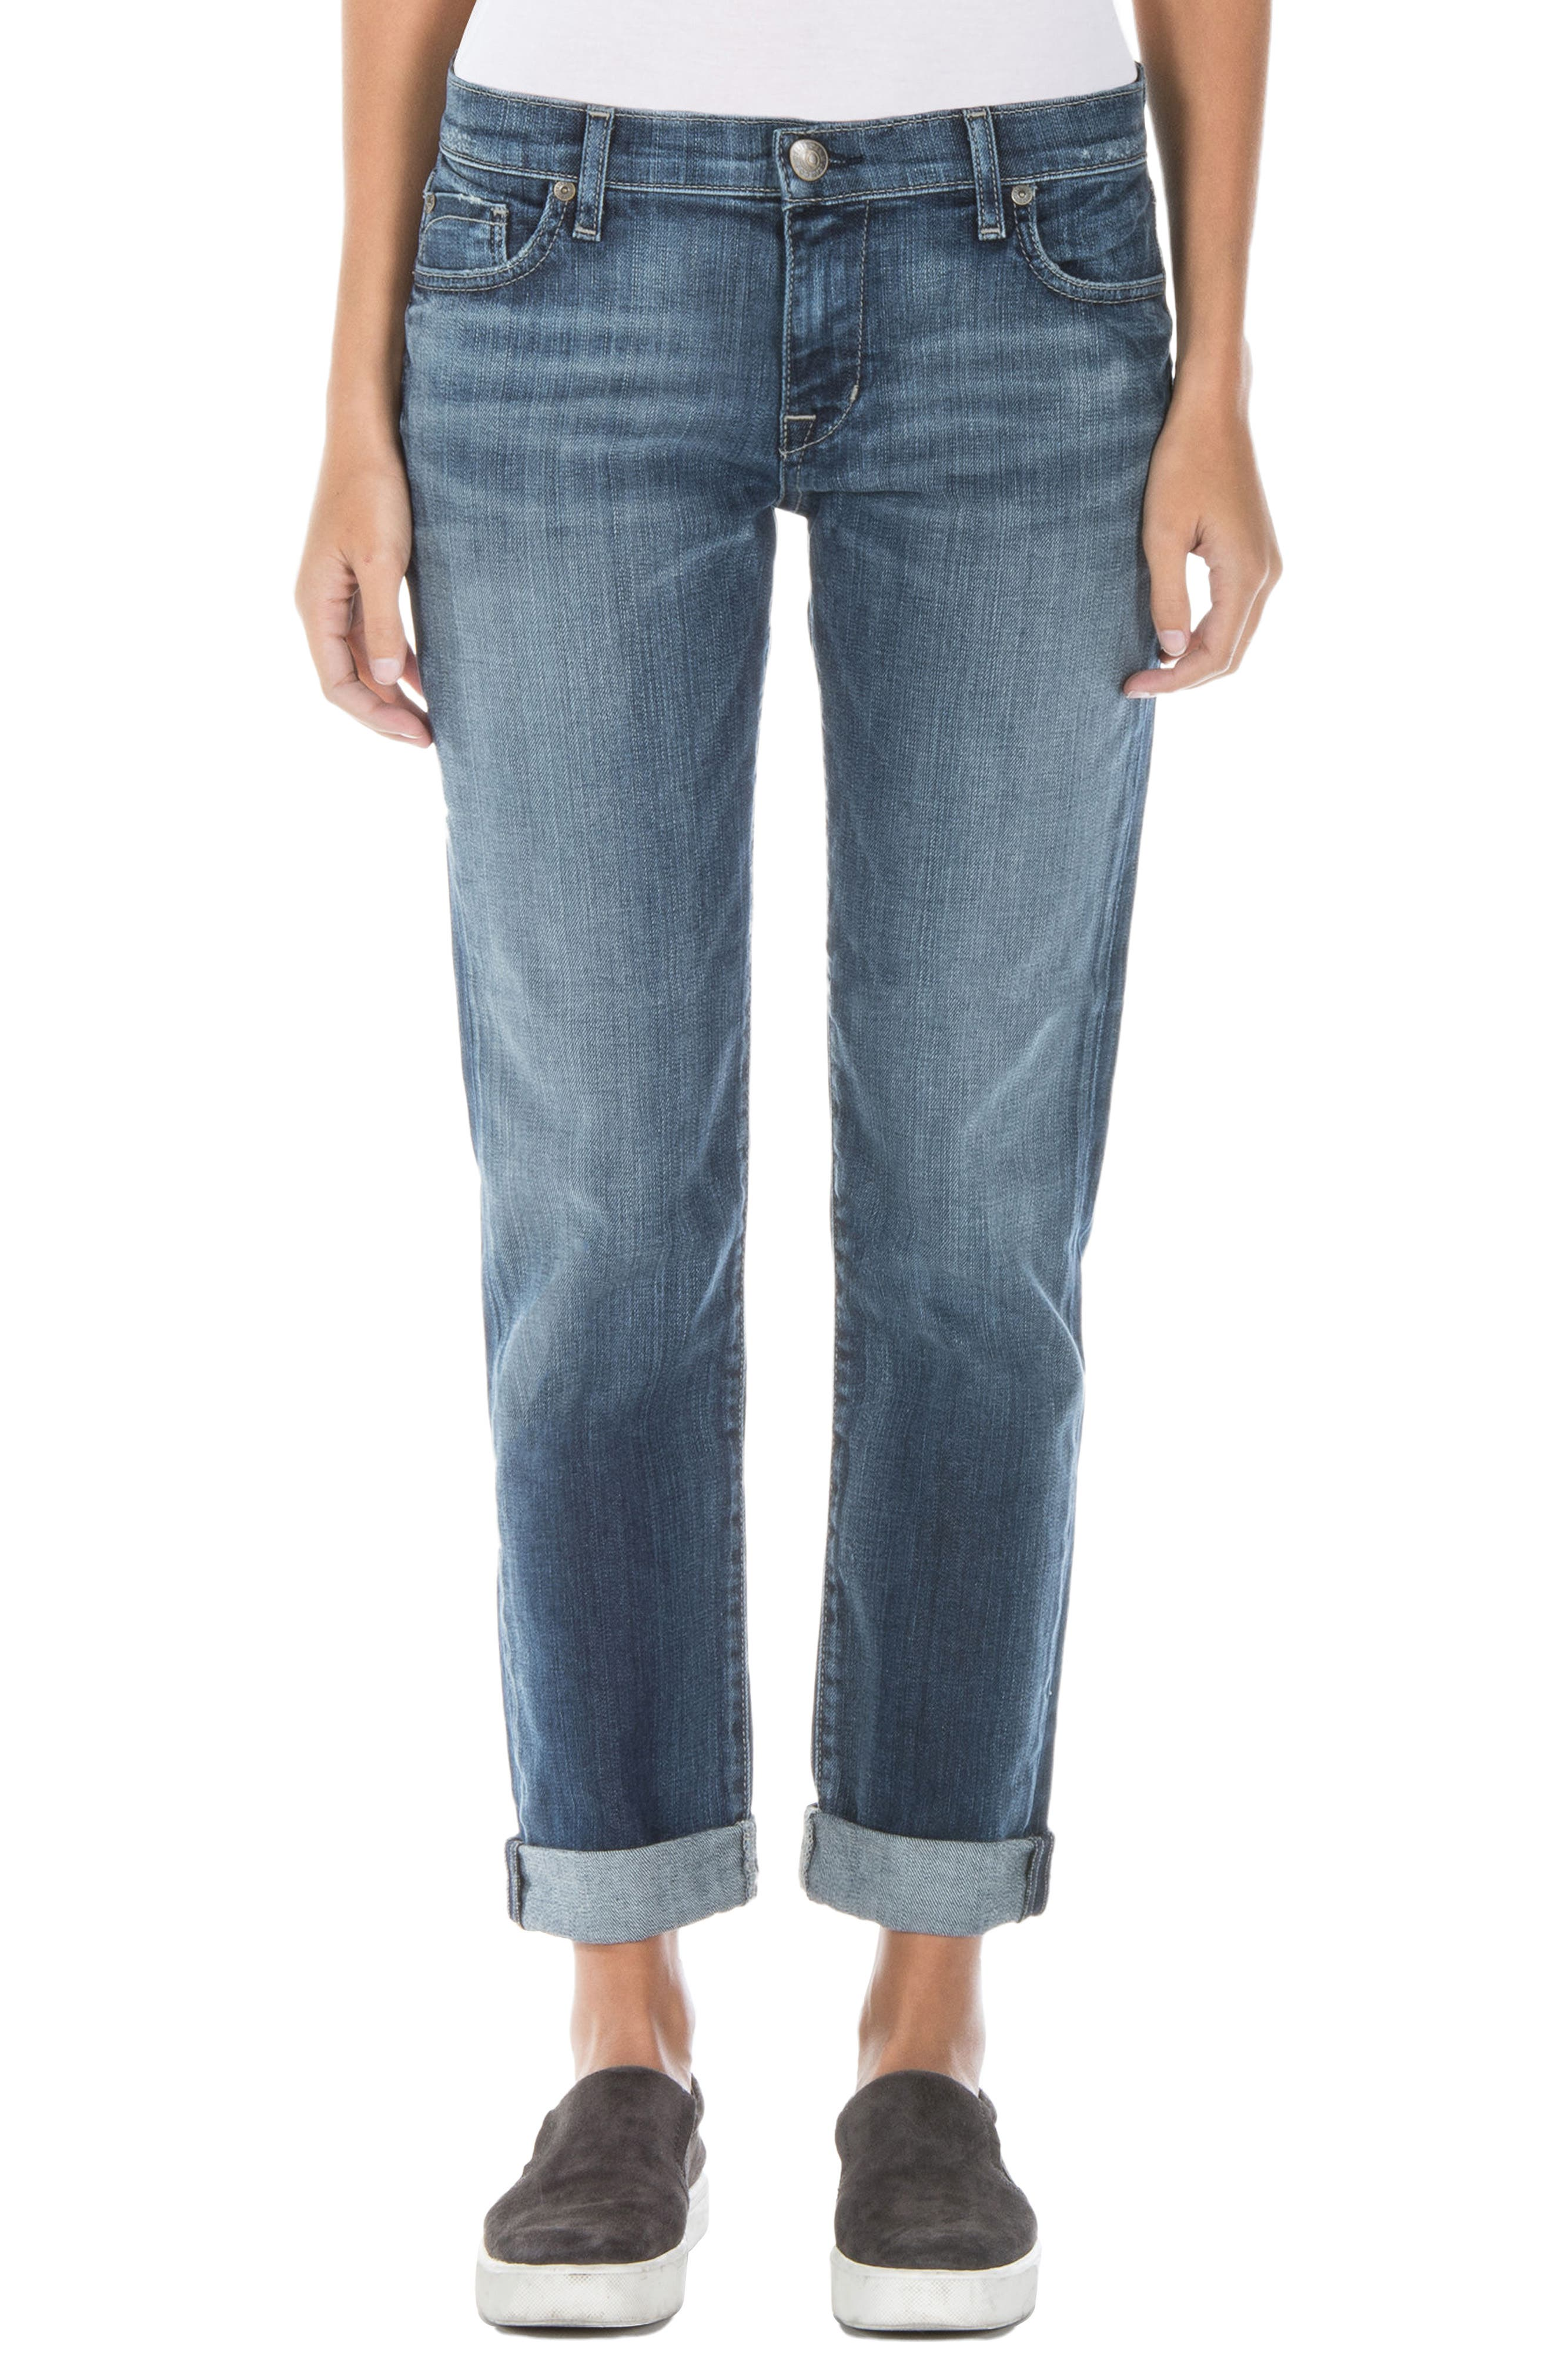 Alternate Image 1 Selected - Fidelity Denim Axl Girlfriend Jeans (Exile Vintage)